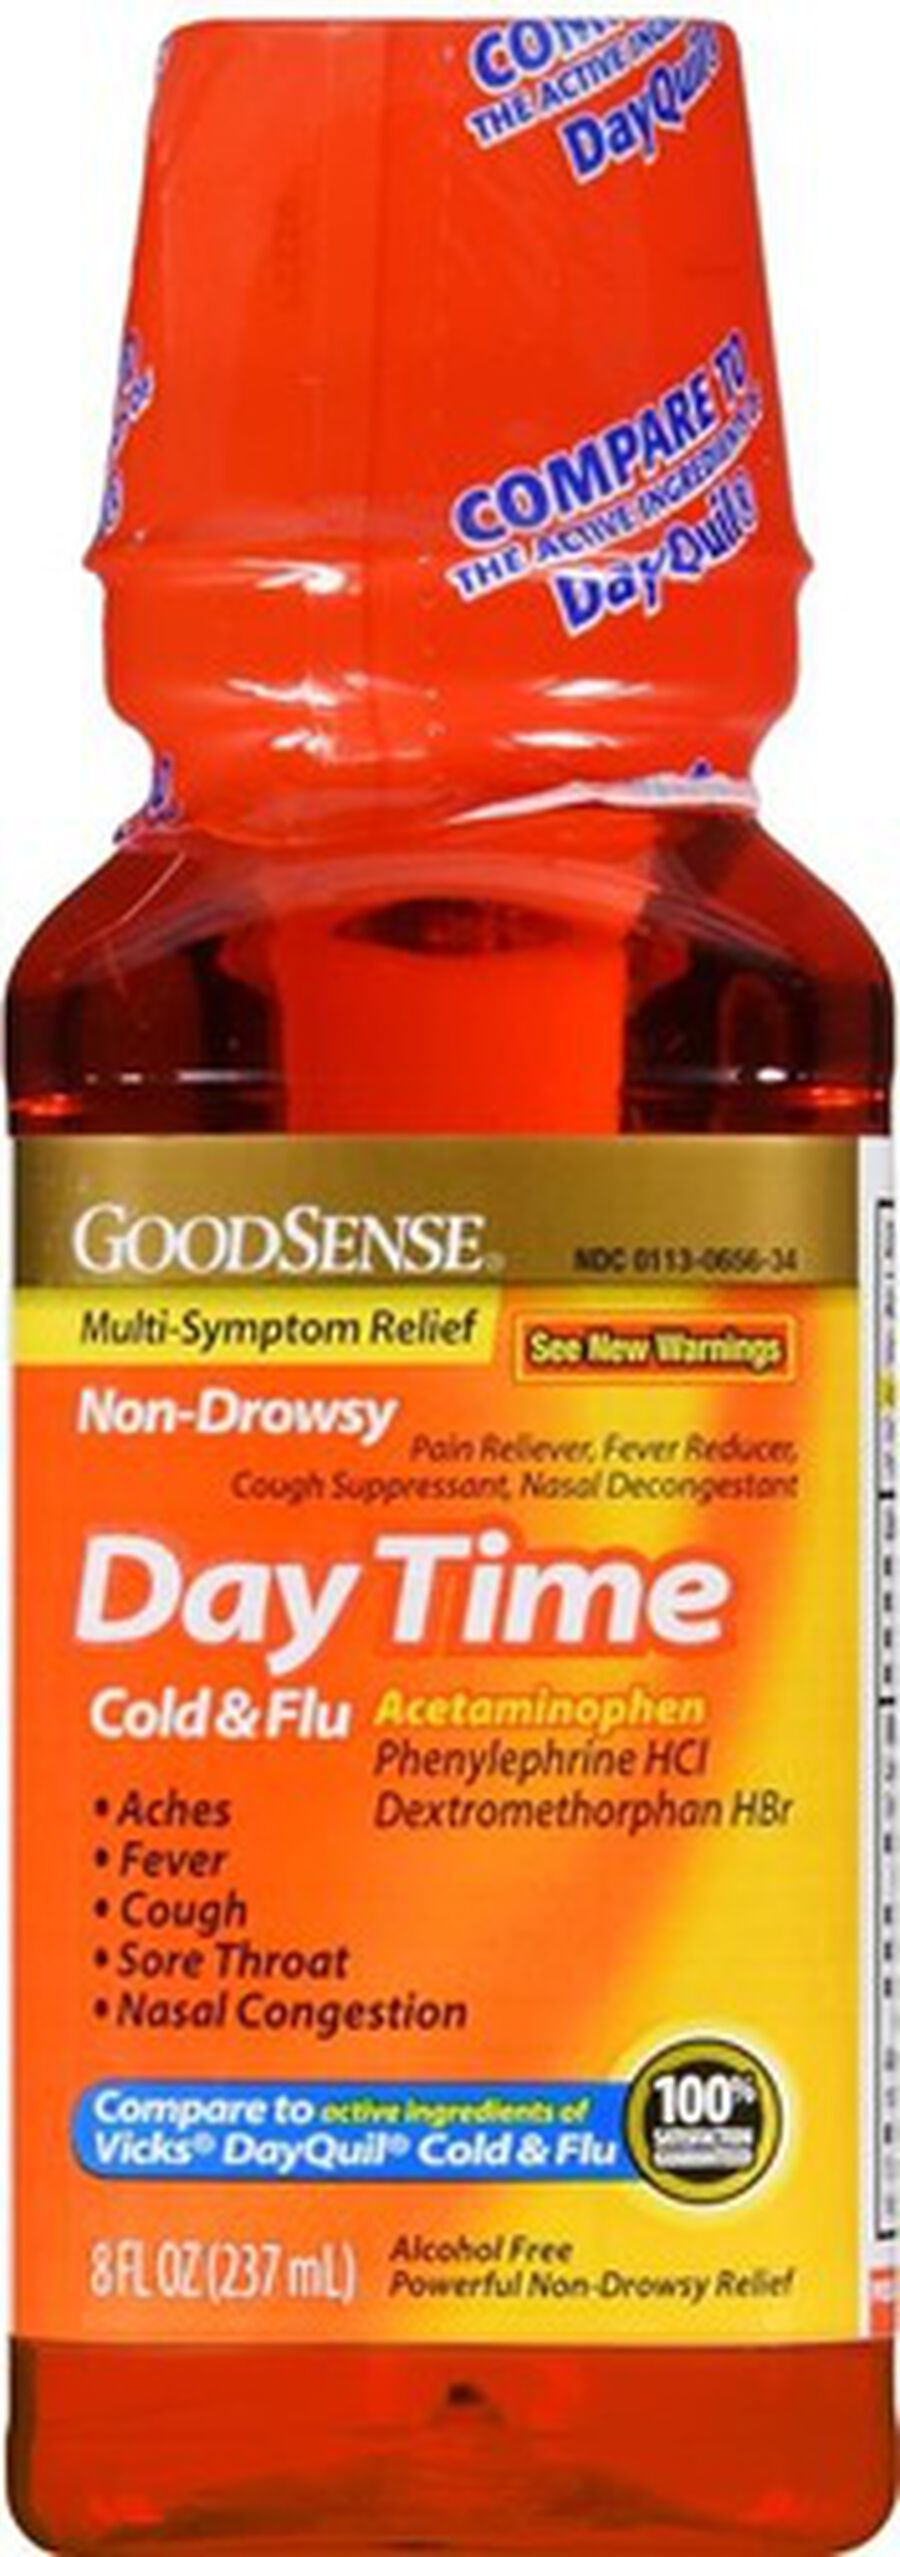 GoodSense® Daytime Cold and Flu Multi Symptom Non Drowsy, 8 oz, , large image number 0